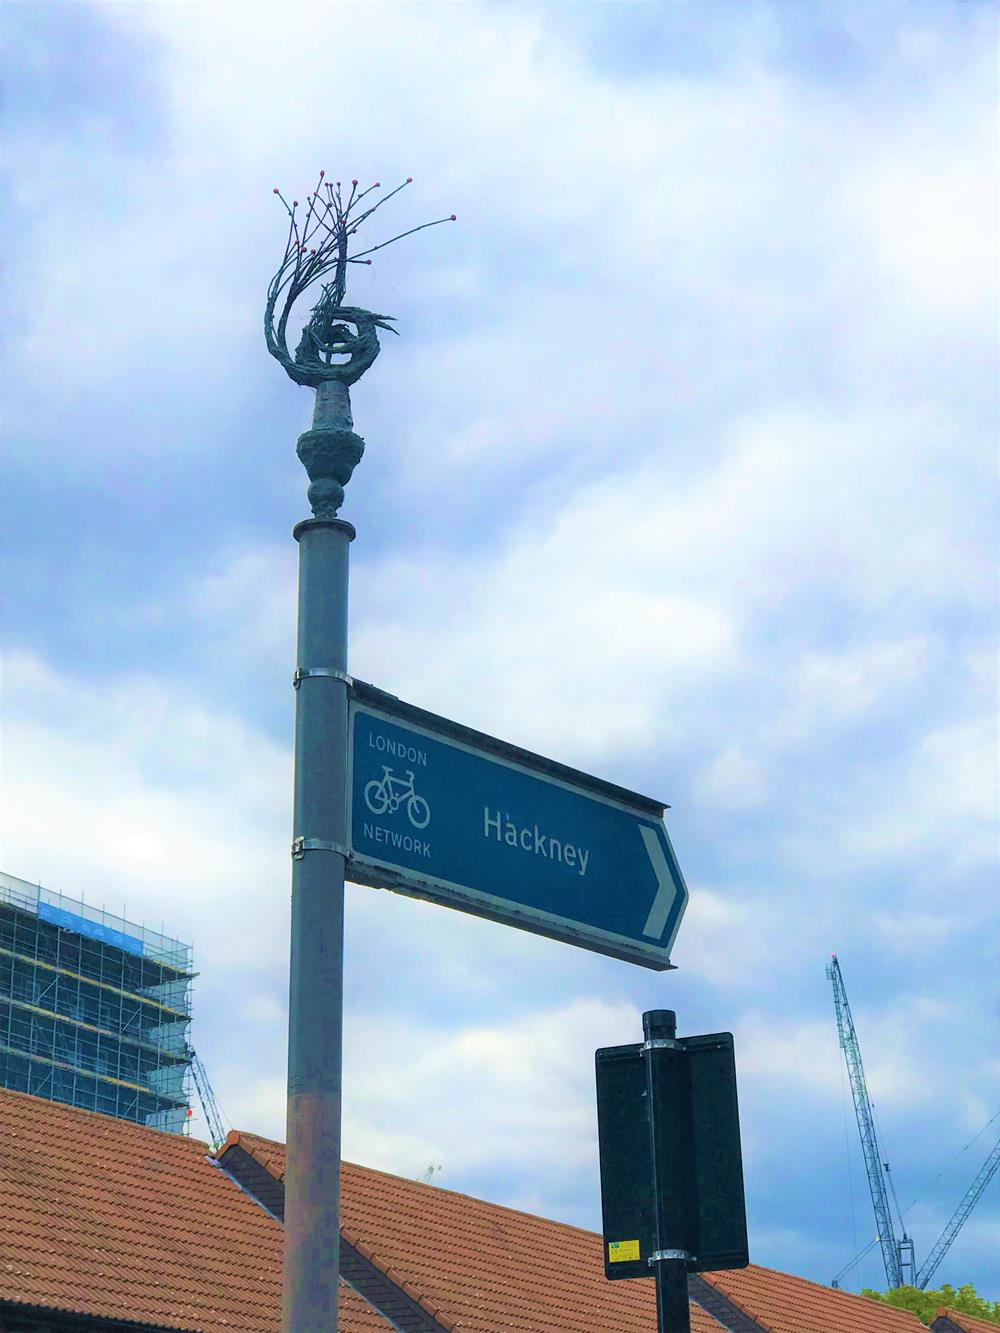 Sculpture on top of a street sign in Hackney